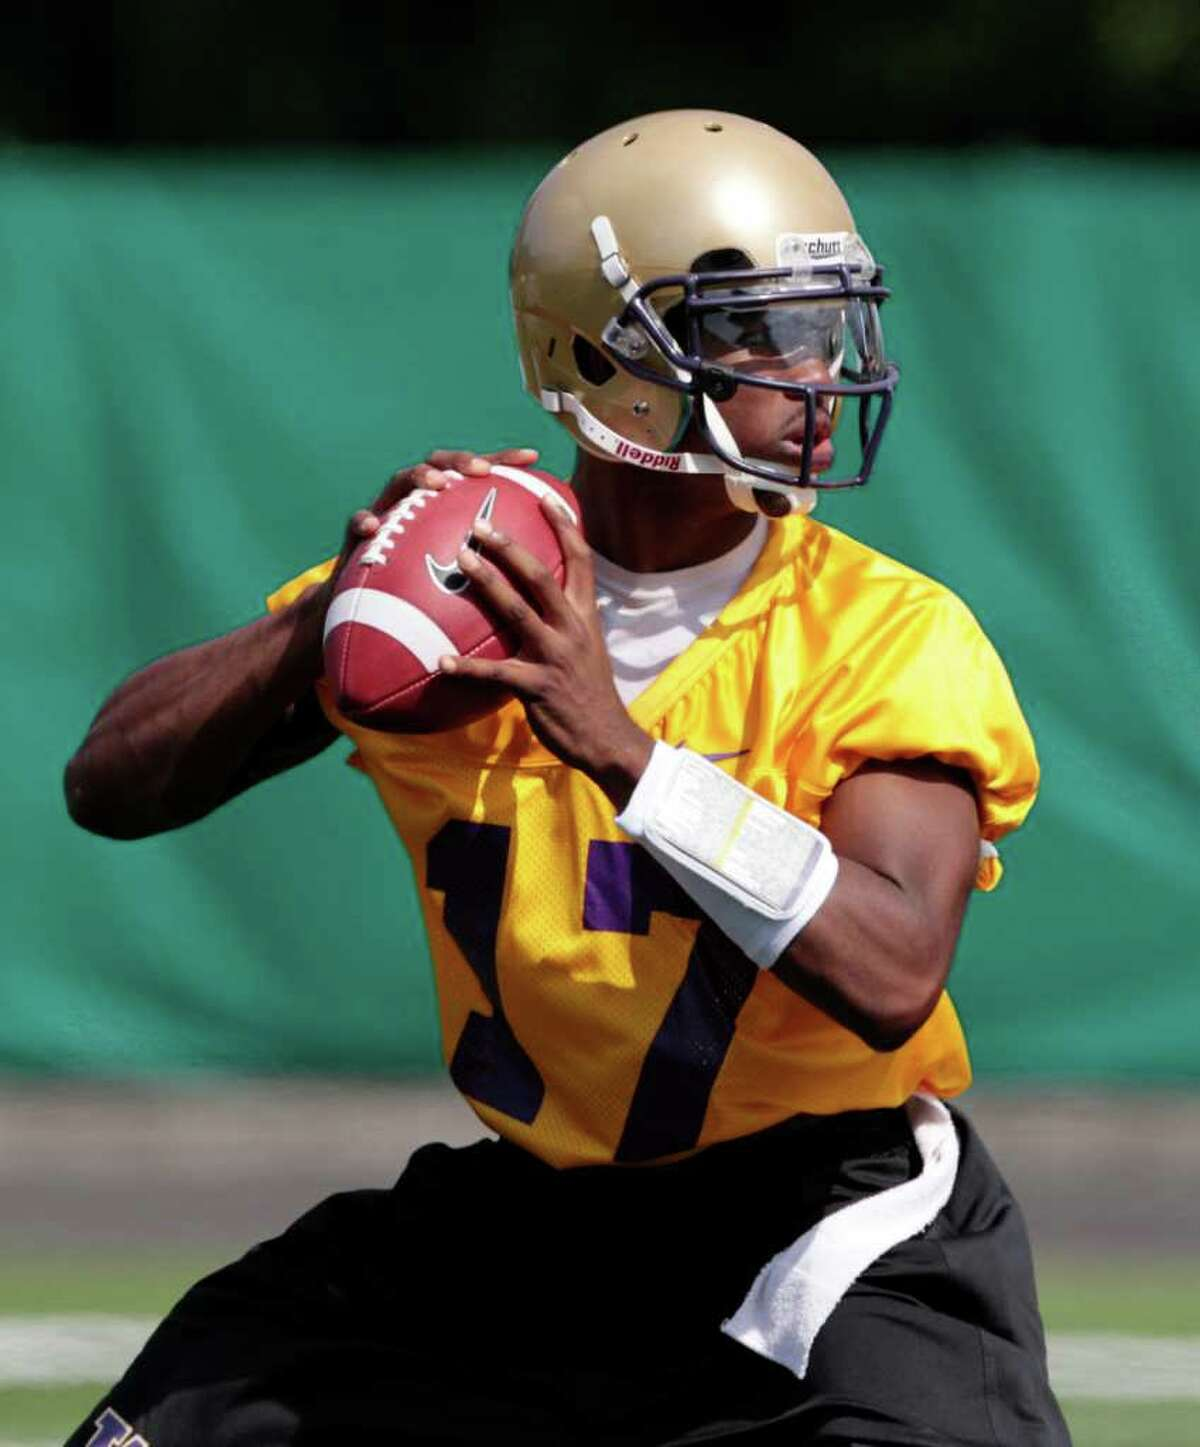 Washington quarterback Keith Price drops back to pass during the NCAA college football team's first practice of the season, Monday, Aug. 8, 2011, in Seattle.